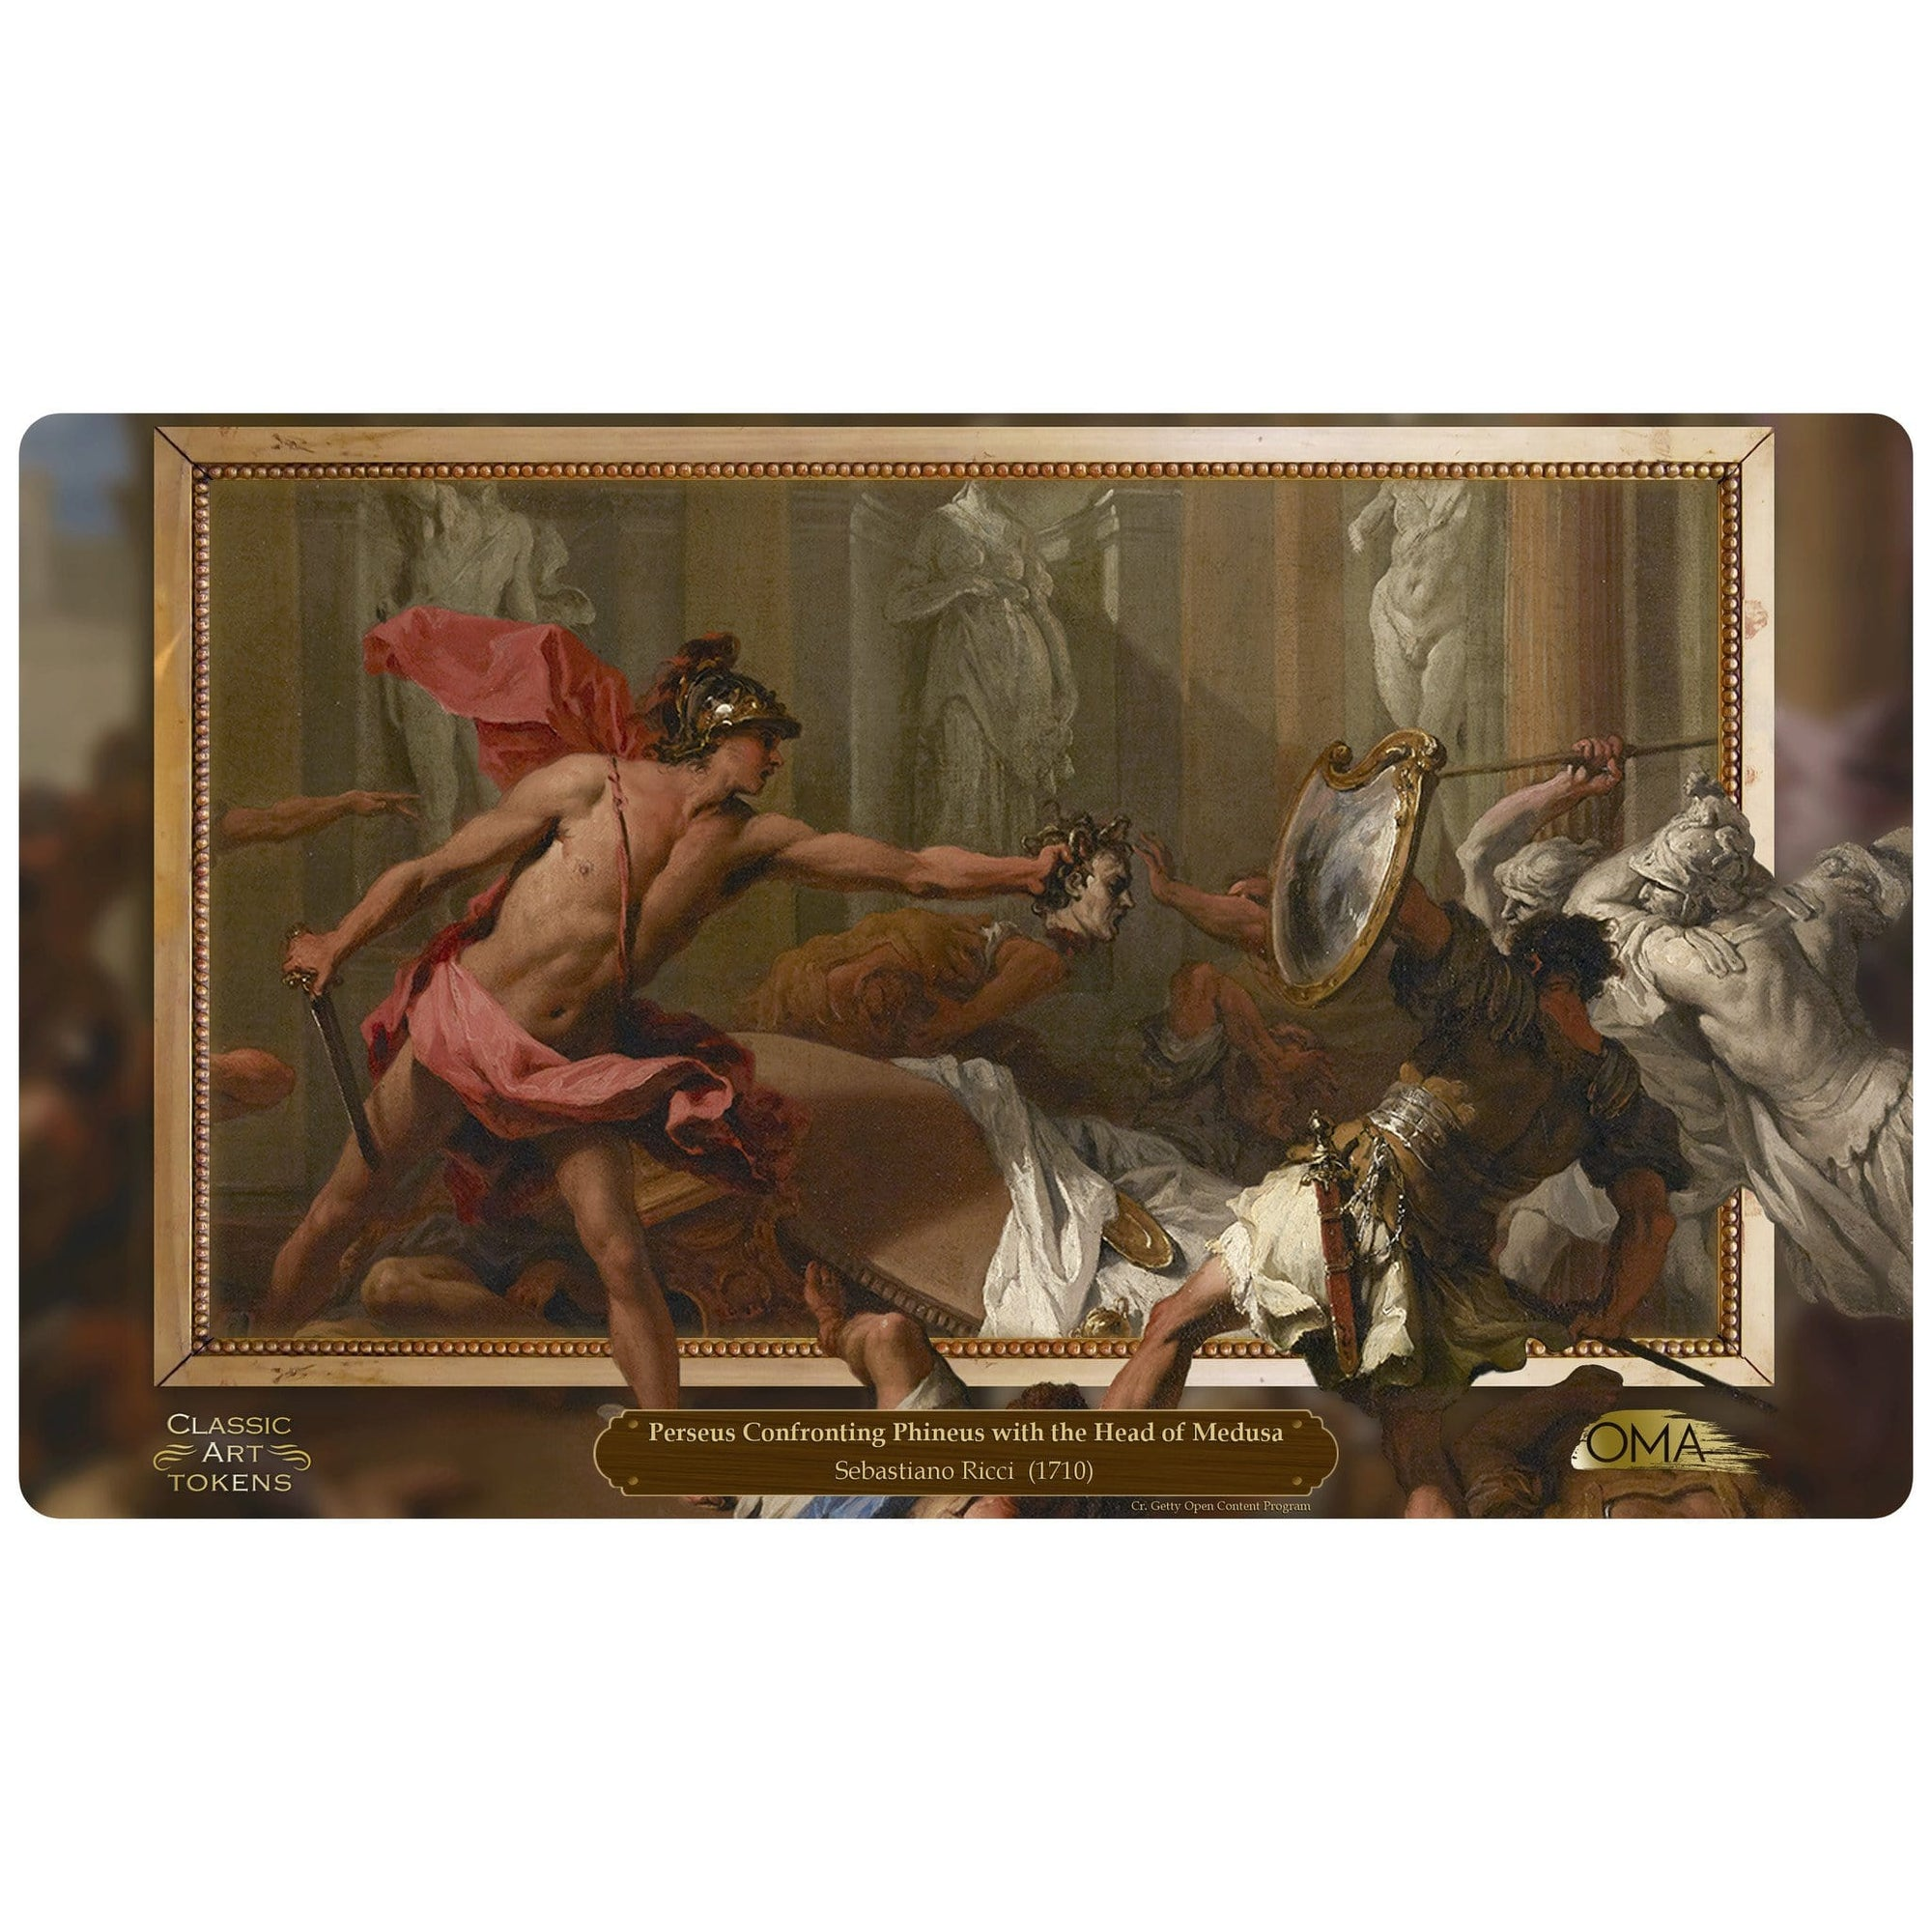 Petrification Playmat by Sebastiano Ricci - Playmat - Original Magic Art - Accessories for Magic the Gathering and other card games